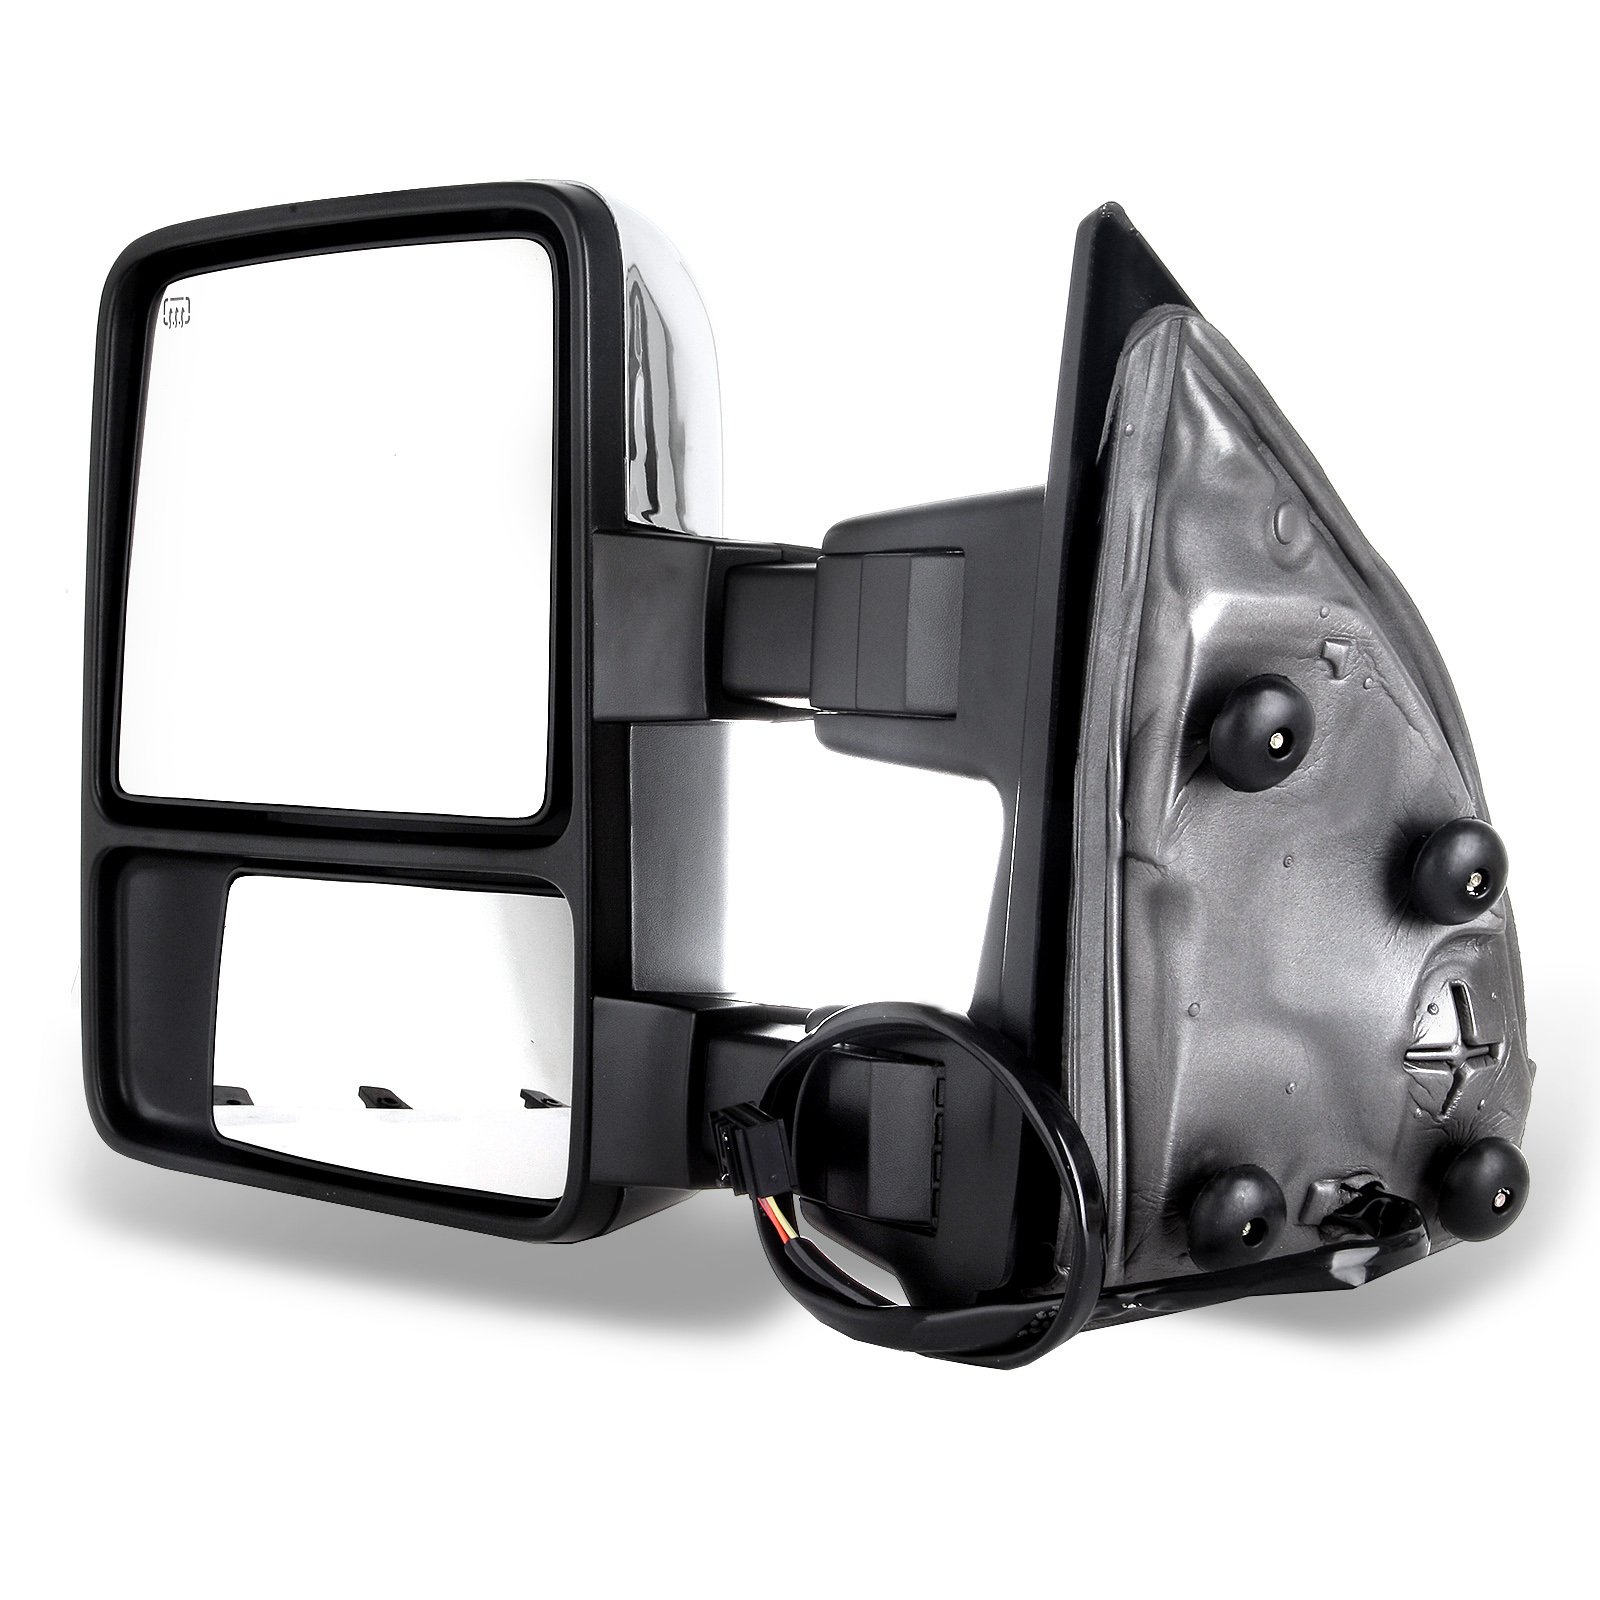 SCITOO fit Ford Towing Mirrors Chrome Rear View Mirrors fit 2008-2016 Ford F250 F350 F450 F550 Super Duty Truck Larger Glass Power Control, Heated Turn Signal Manual Extending Folding by SCITOO (Image #3)